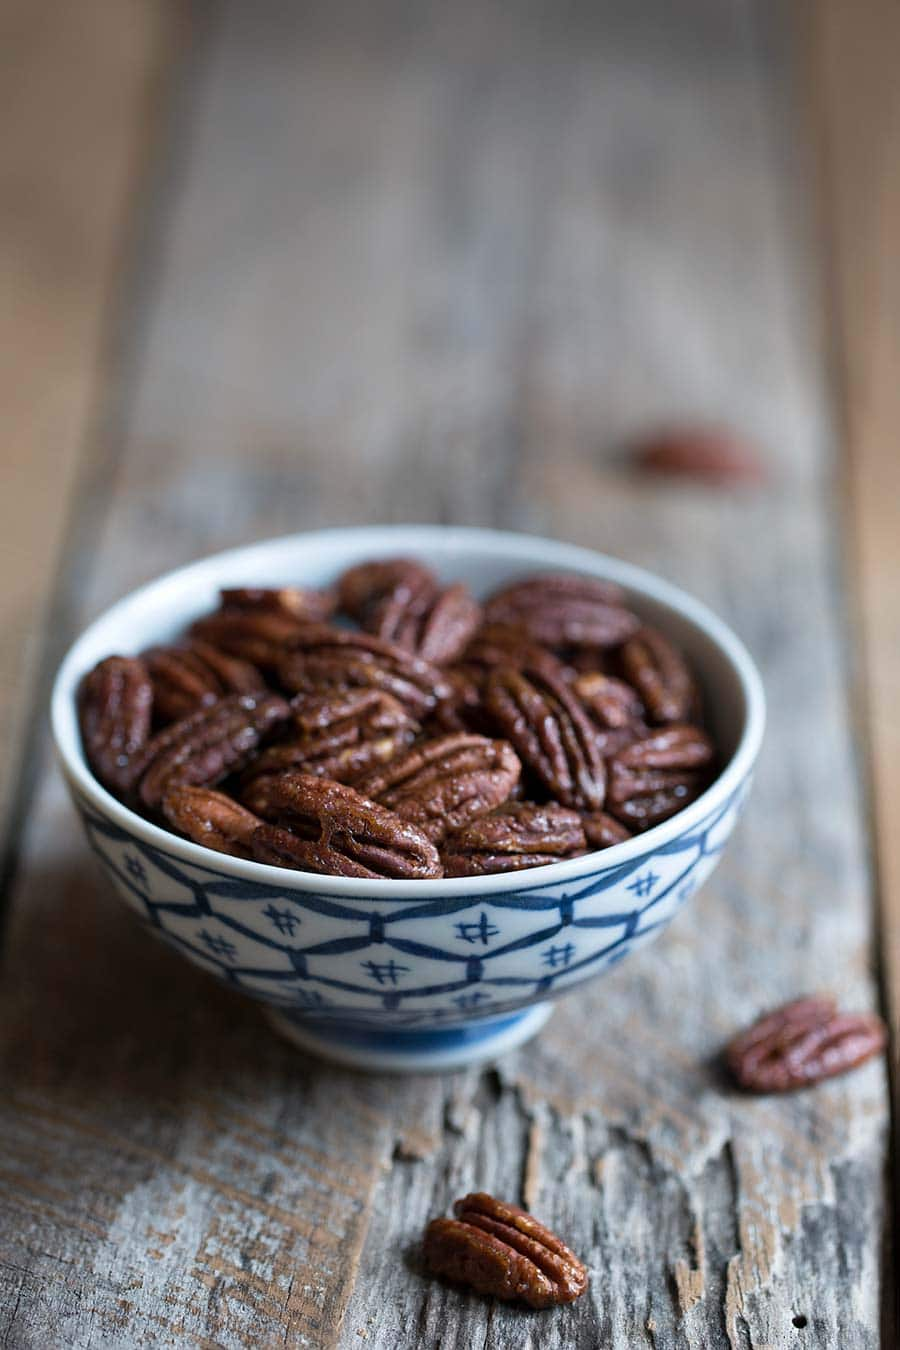 Candied pecans in a small blue and white bowl on a wood backdrop.